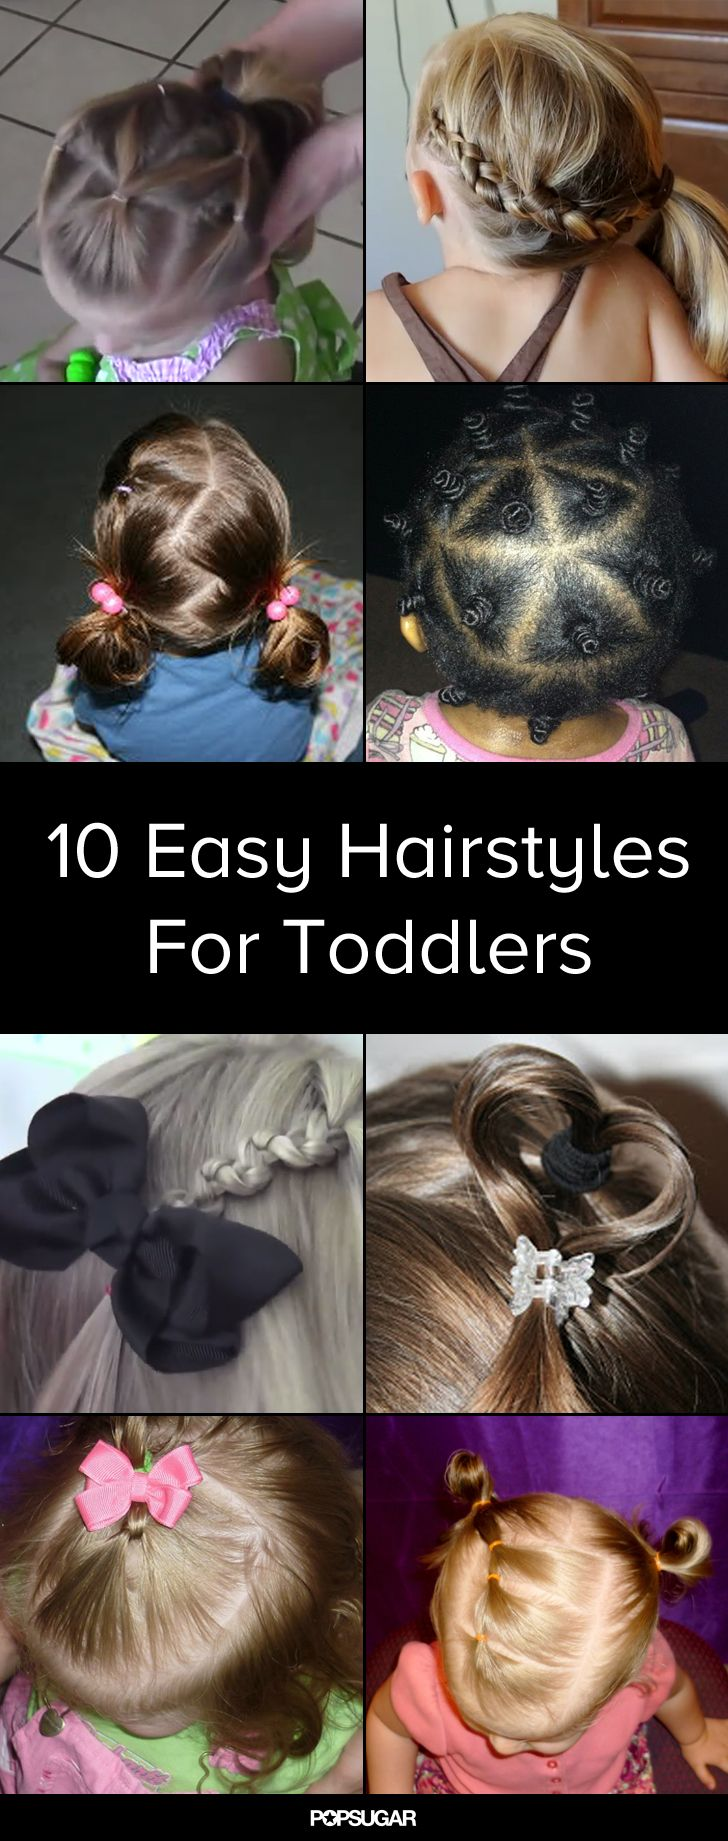 10 easy-to-master hairdos for your impatient toddler | hair style